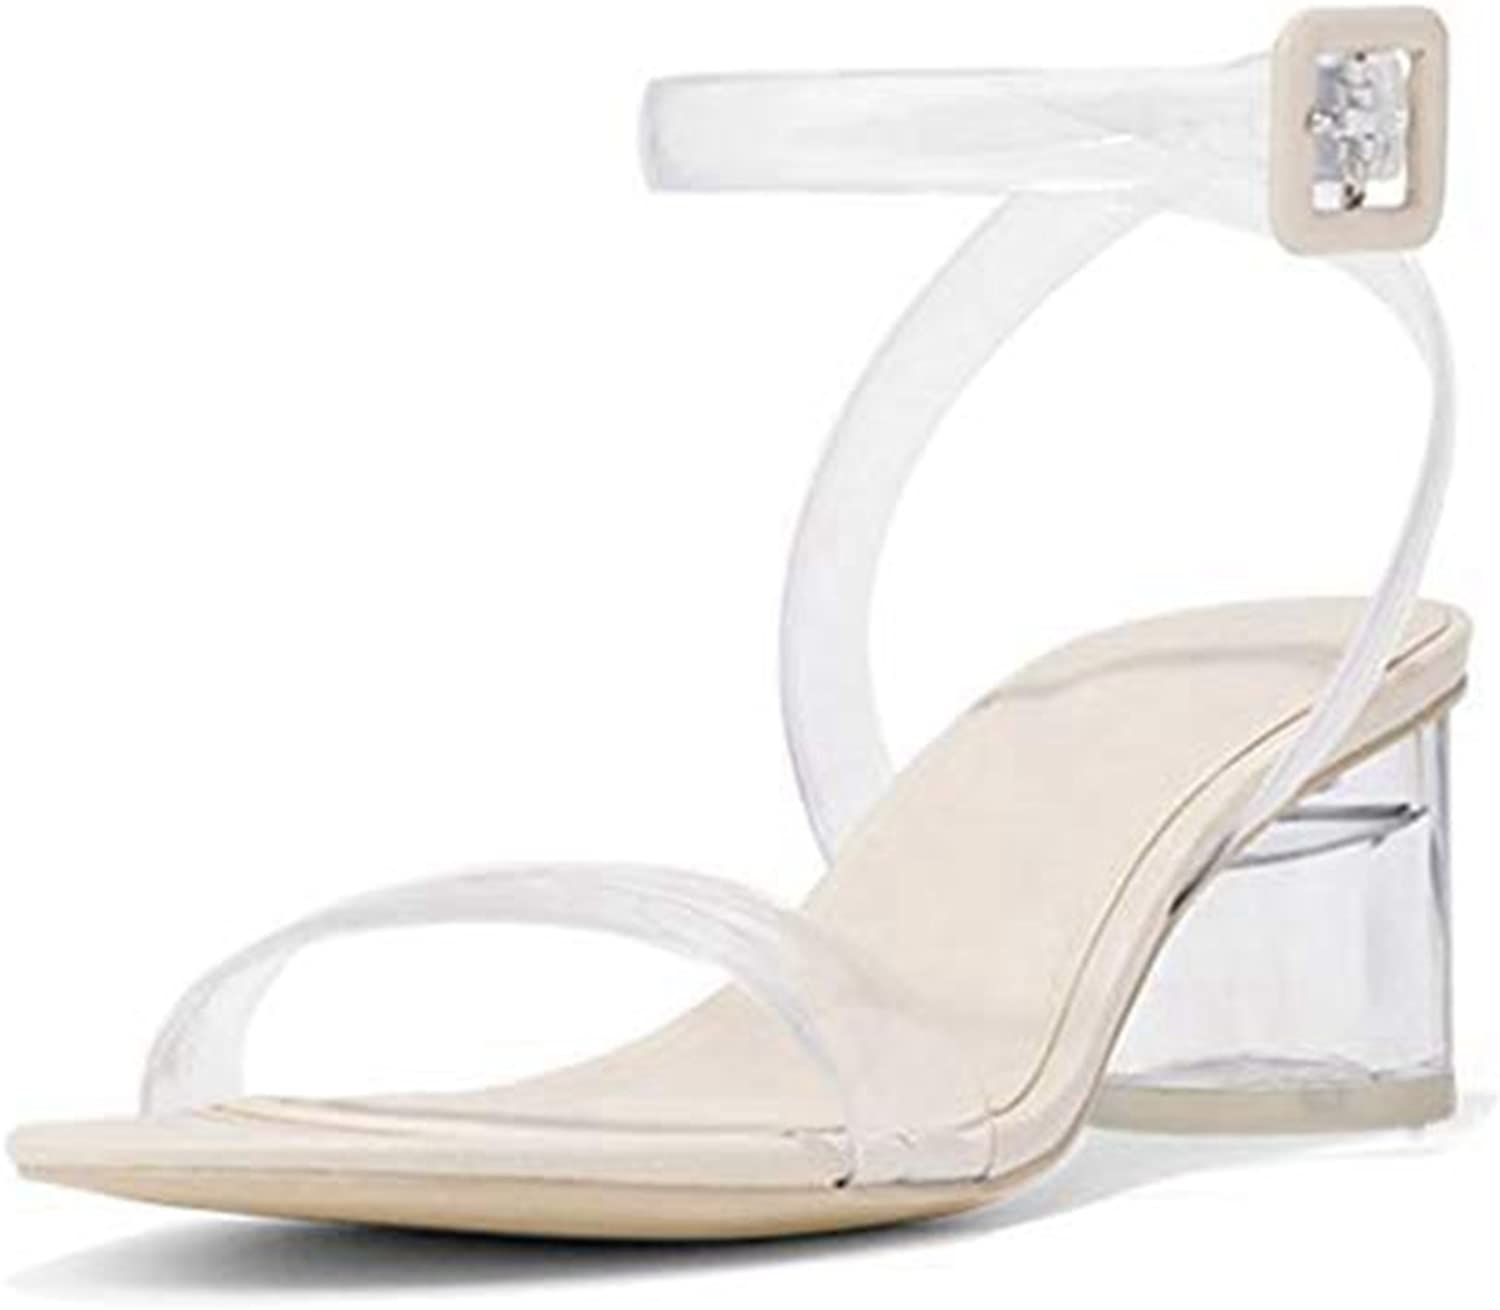 T-JULY Women's Lucite Clear Strappy Block Chunky High Heel Sandals Ankle Strap Adjustable Buckle Open Toe Slides